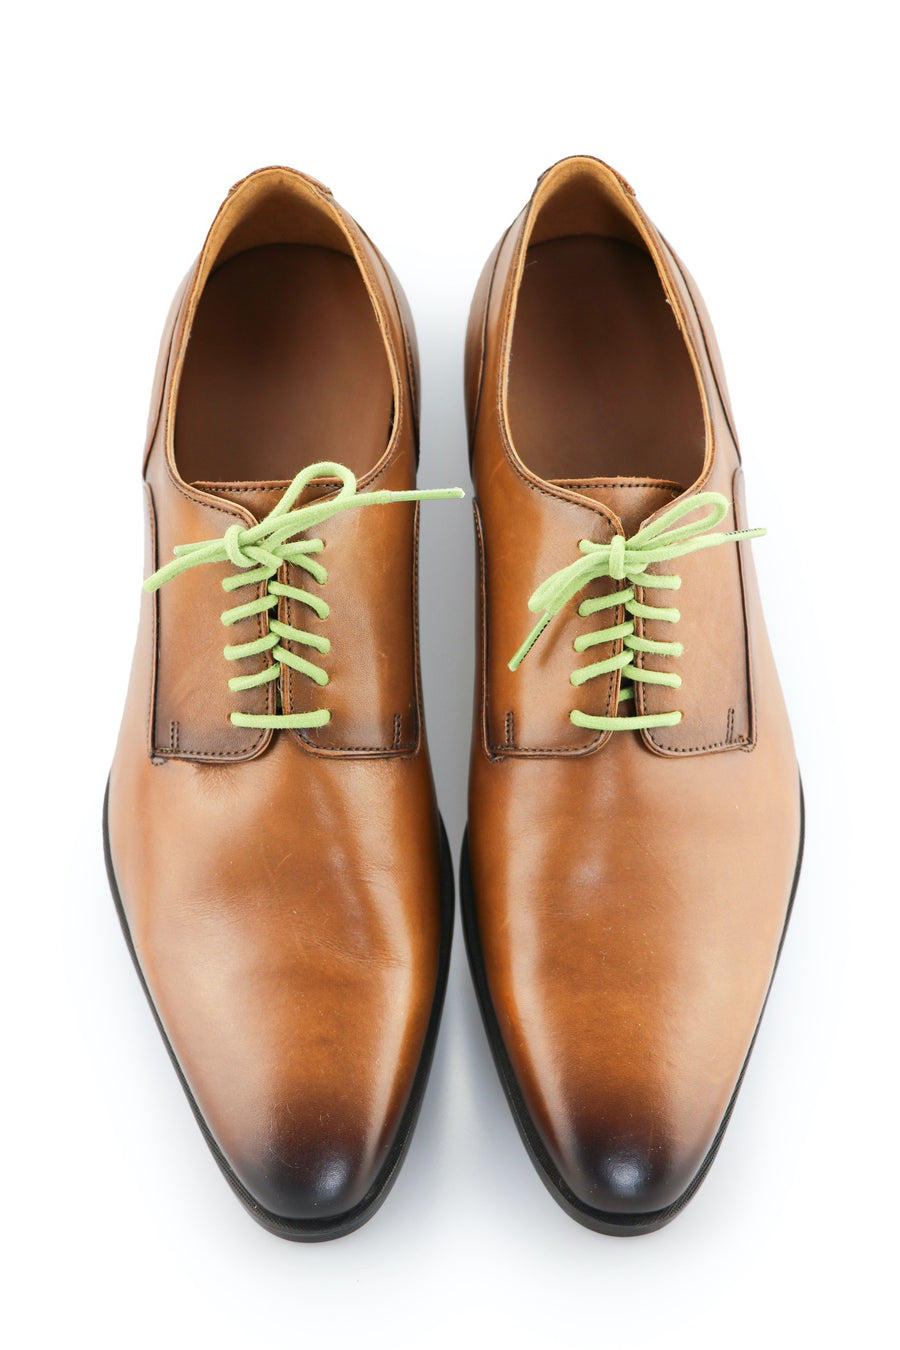 Shoe Laces Apple Green Waxed Cotton Ted and Lemon